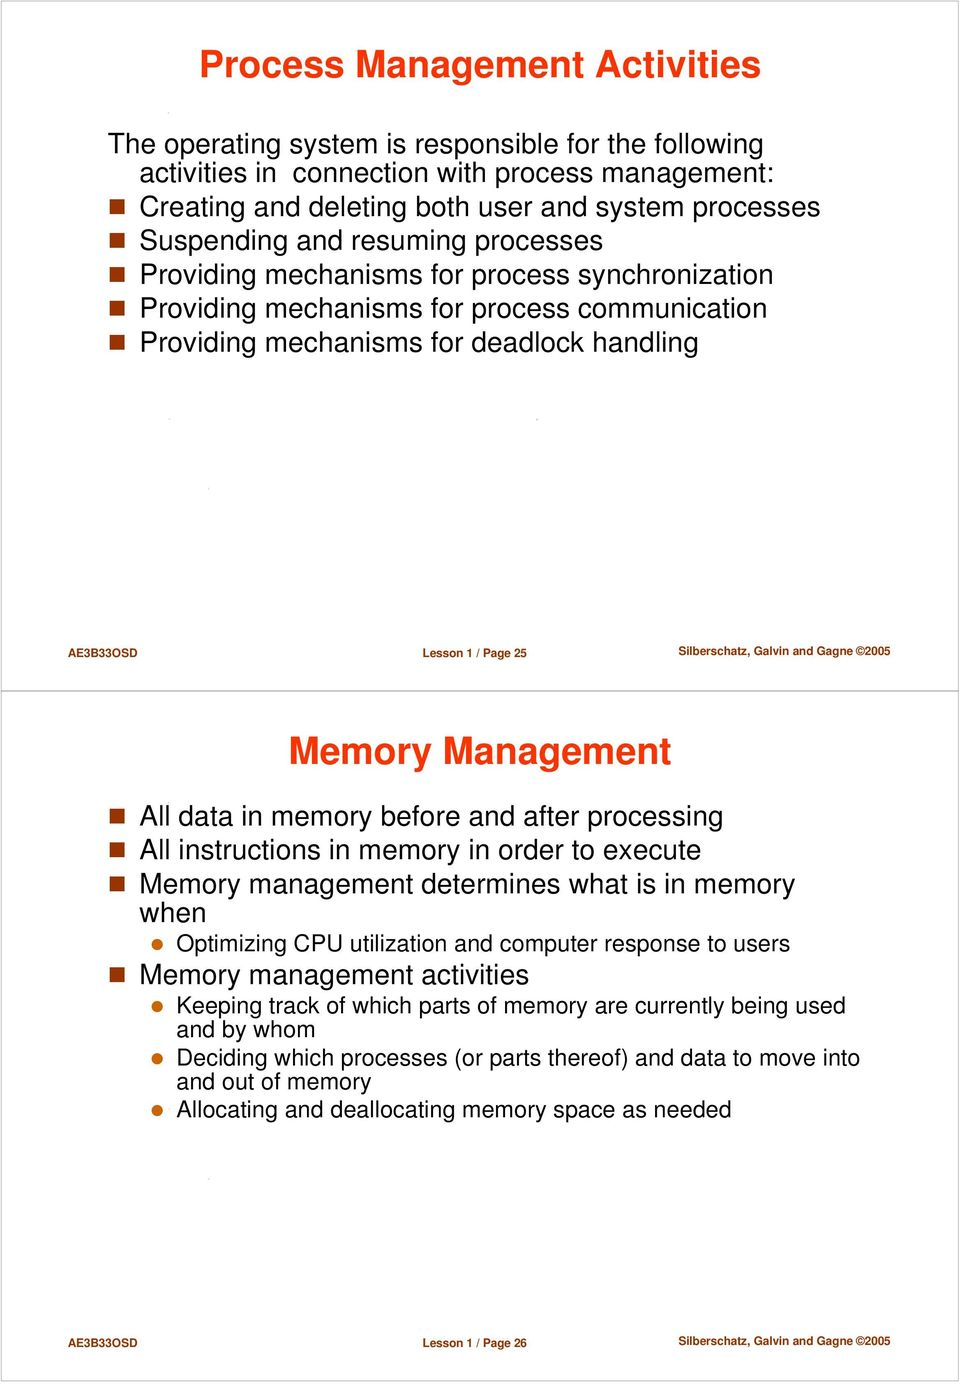 Management All data in memory before and after processing All instructions in memory in order to execute Memory management determines what is in memory when Optimizing CPU utilization and computer